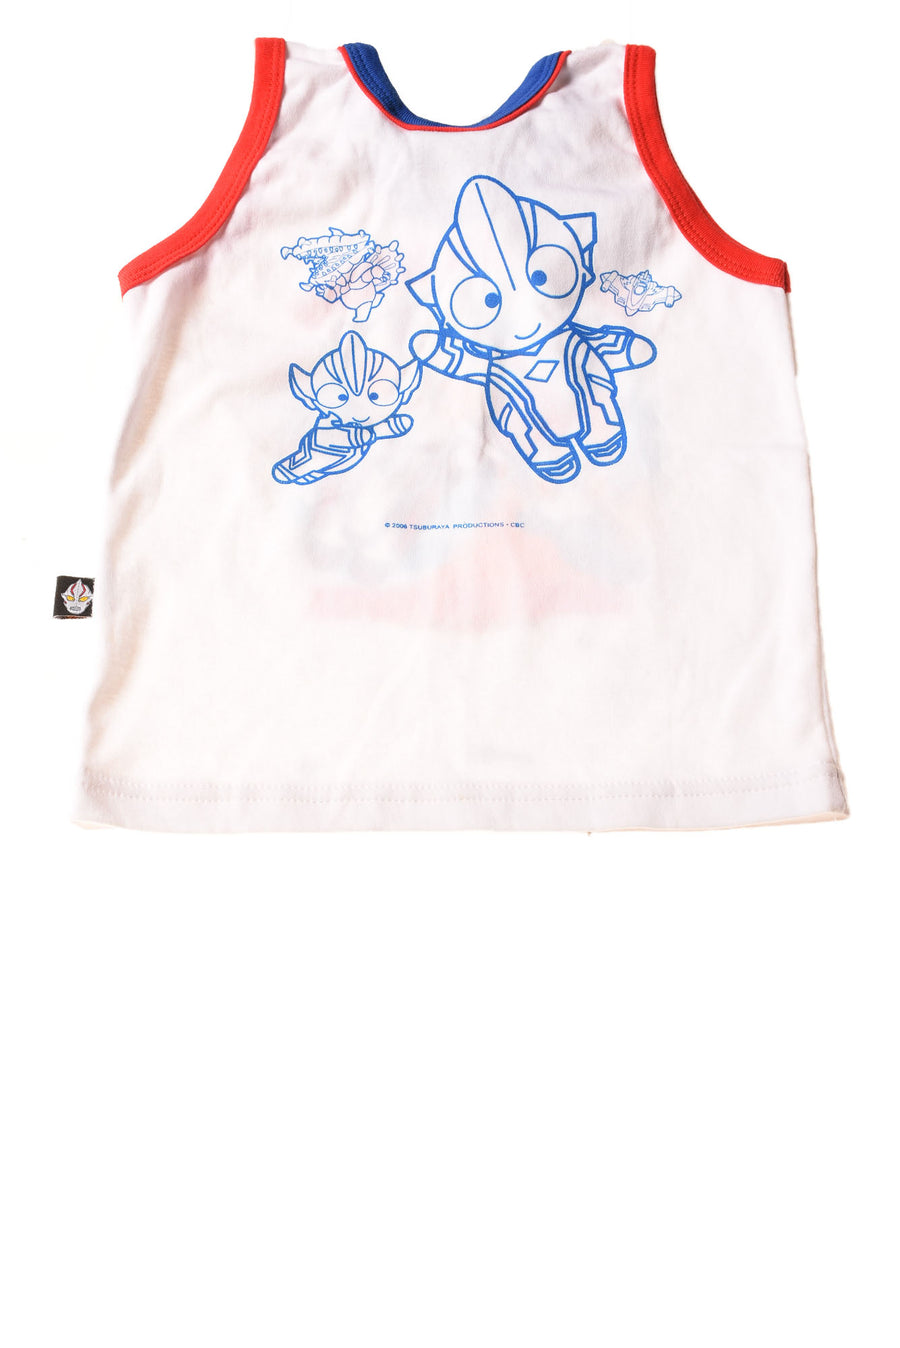 Toddler Boy's Shirt By Tsuburaya Productions